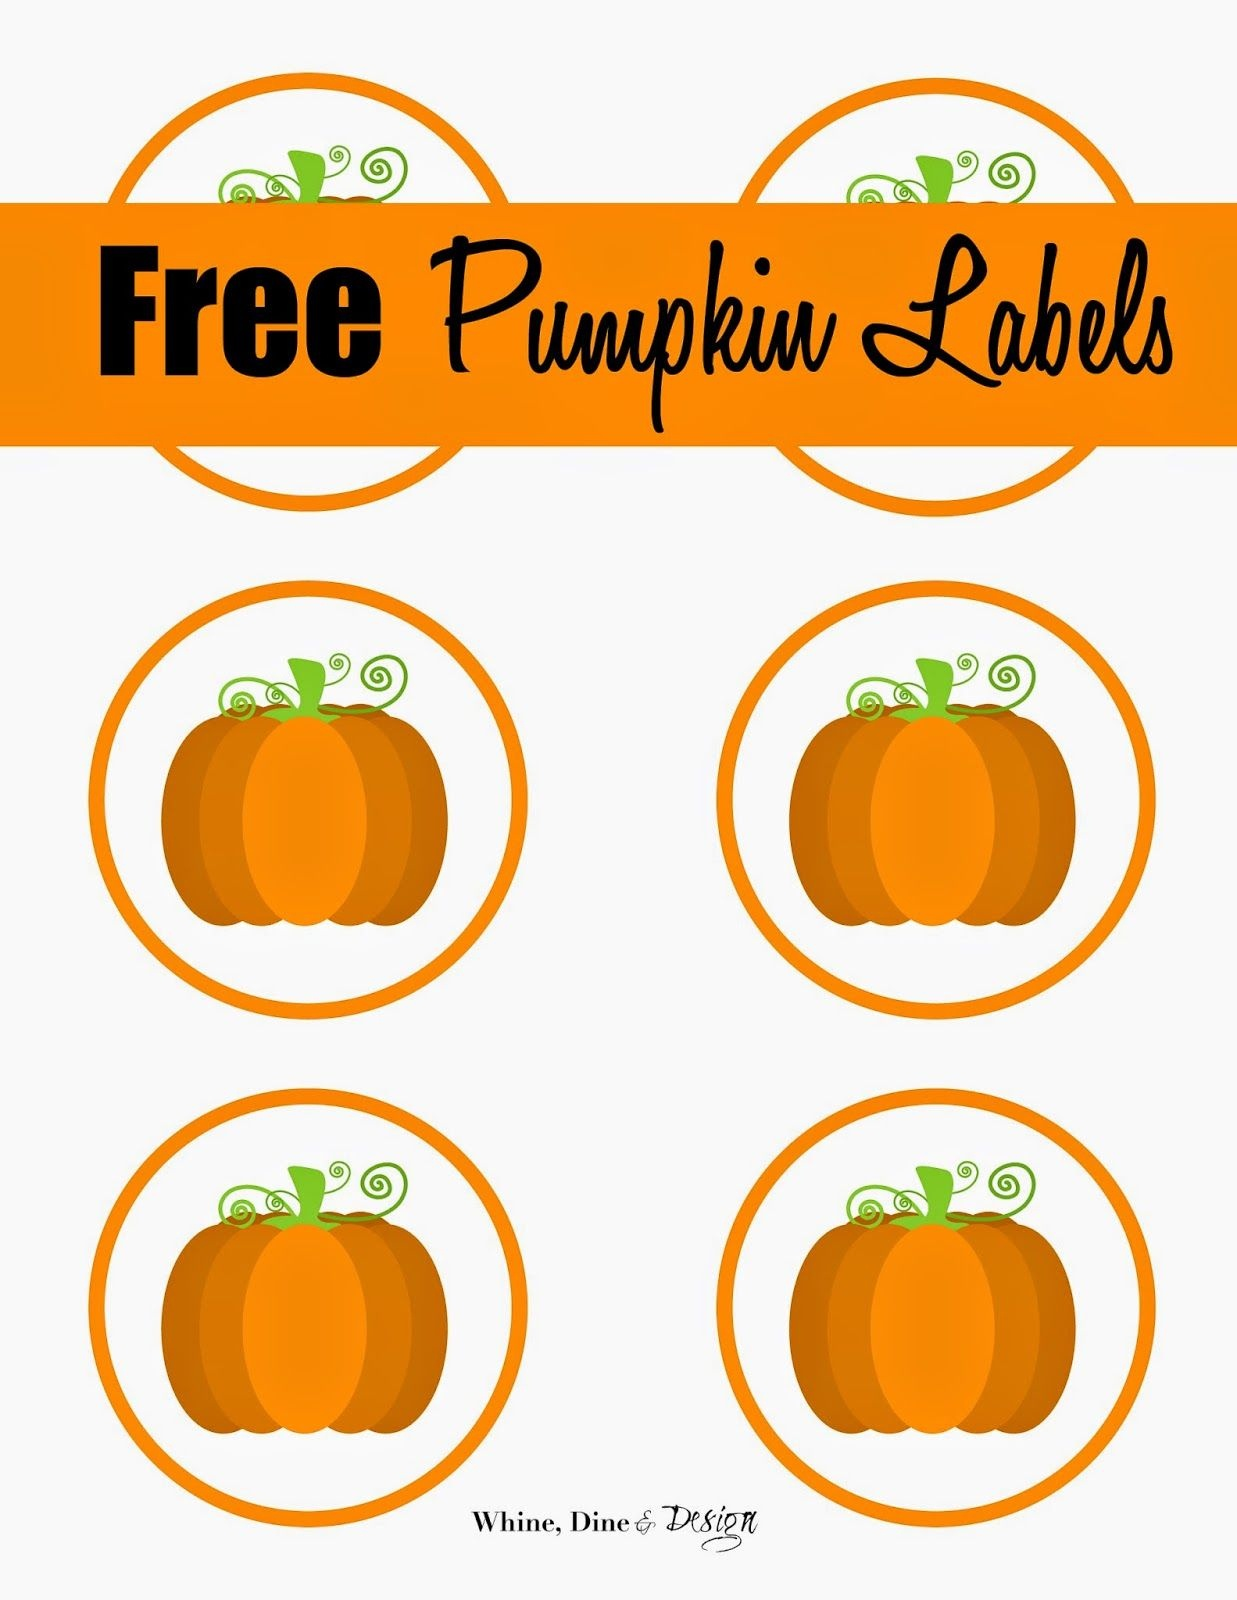 Free Printable Pumpkin Labels/cupcake Toppers | Craft Ideas/diy In - Free Printable Pumpkin Gift Tags